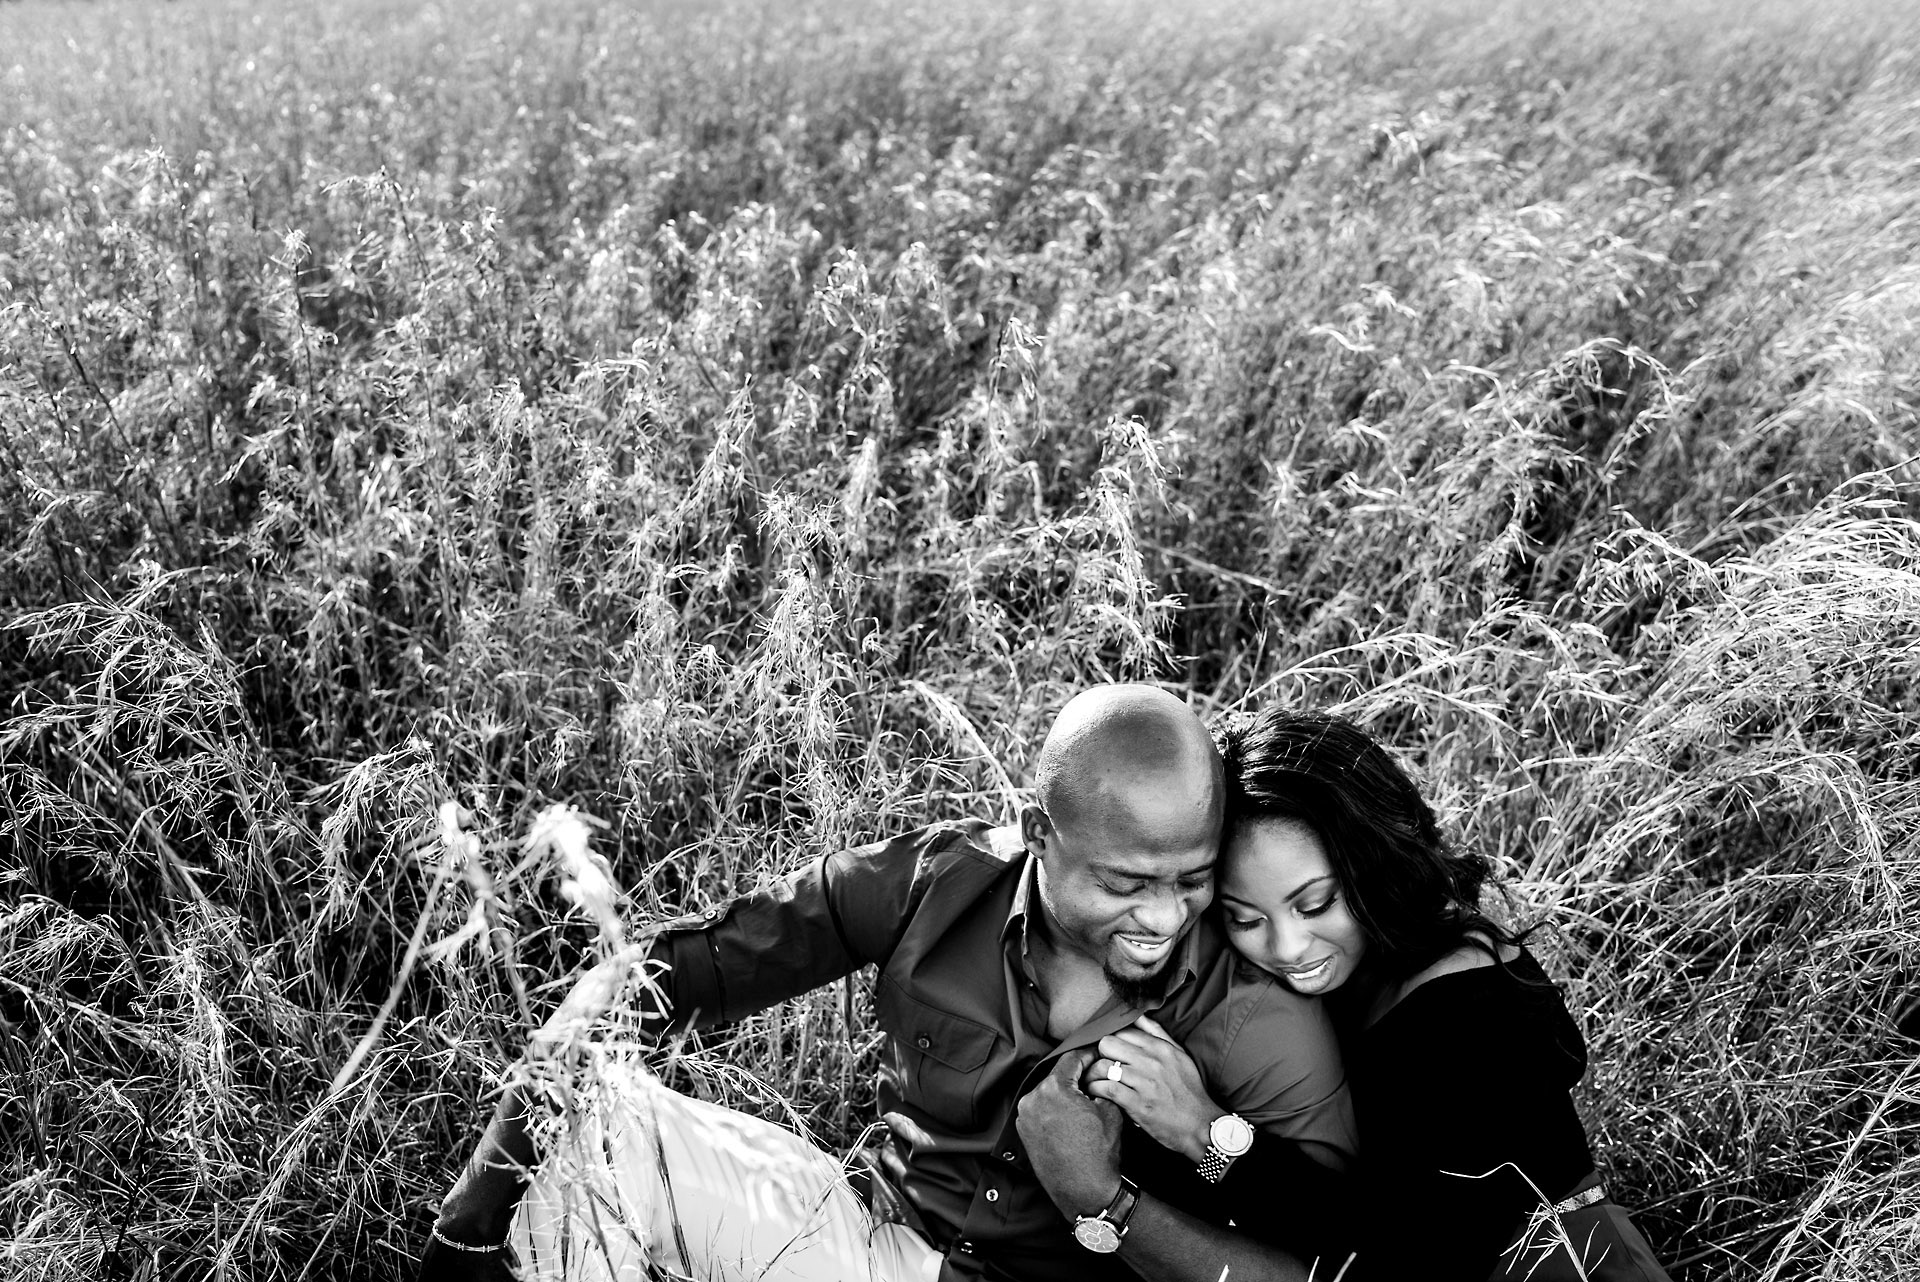 engagement-session-photographer04.jpg